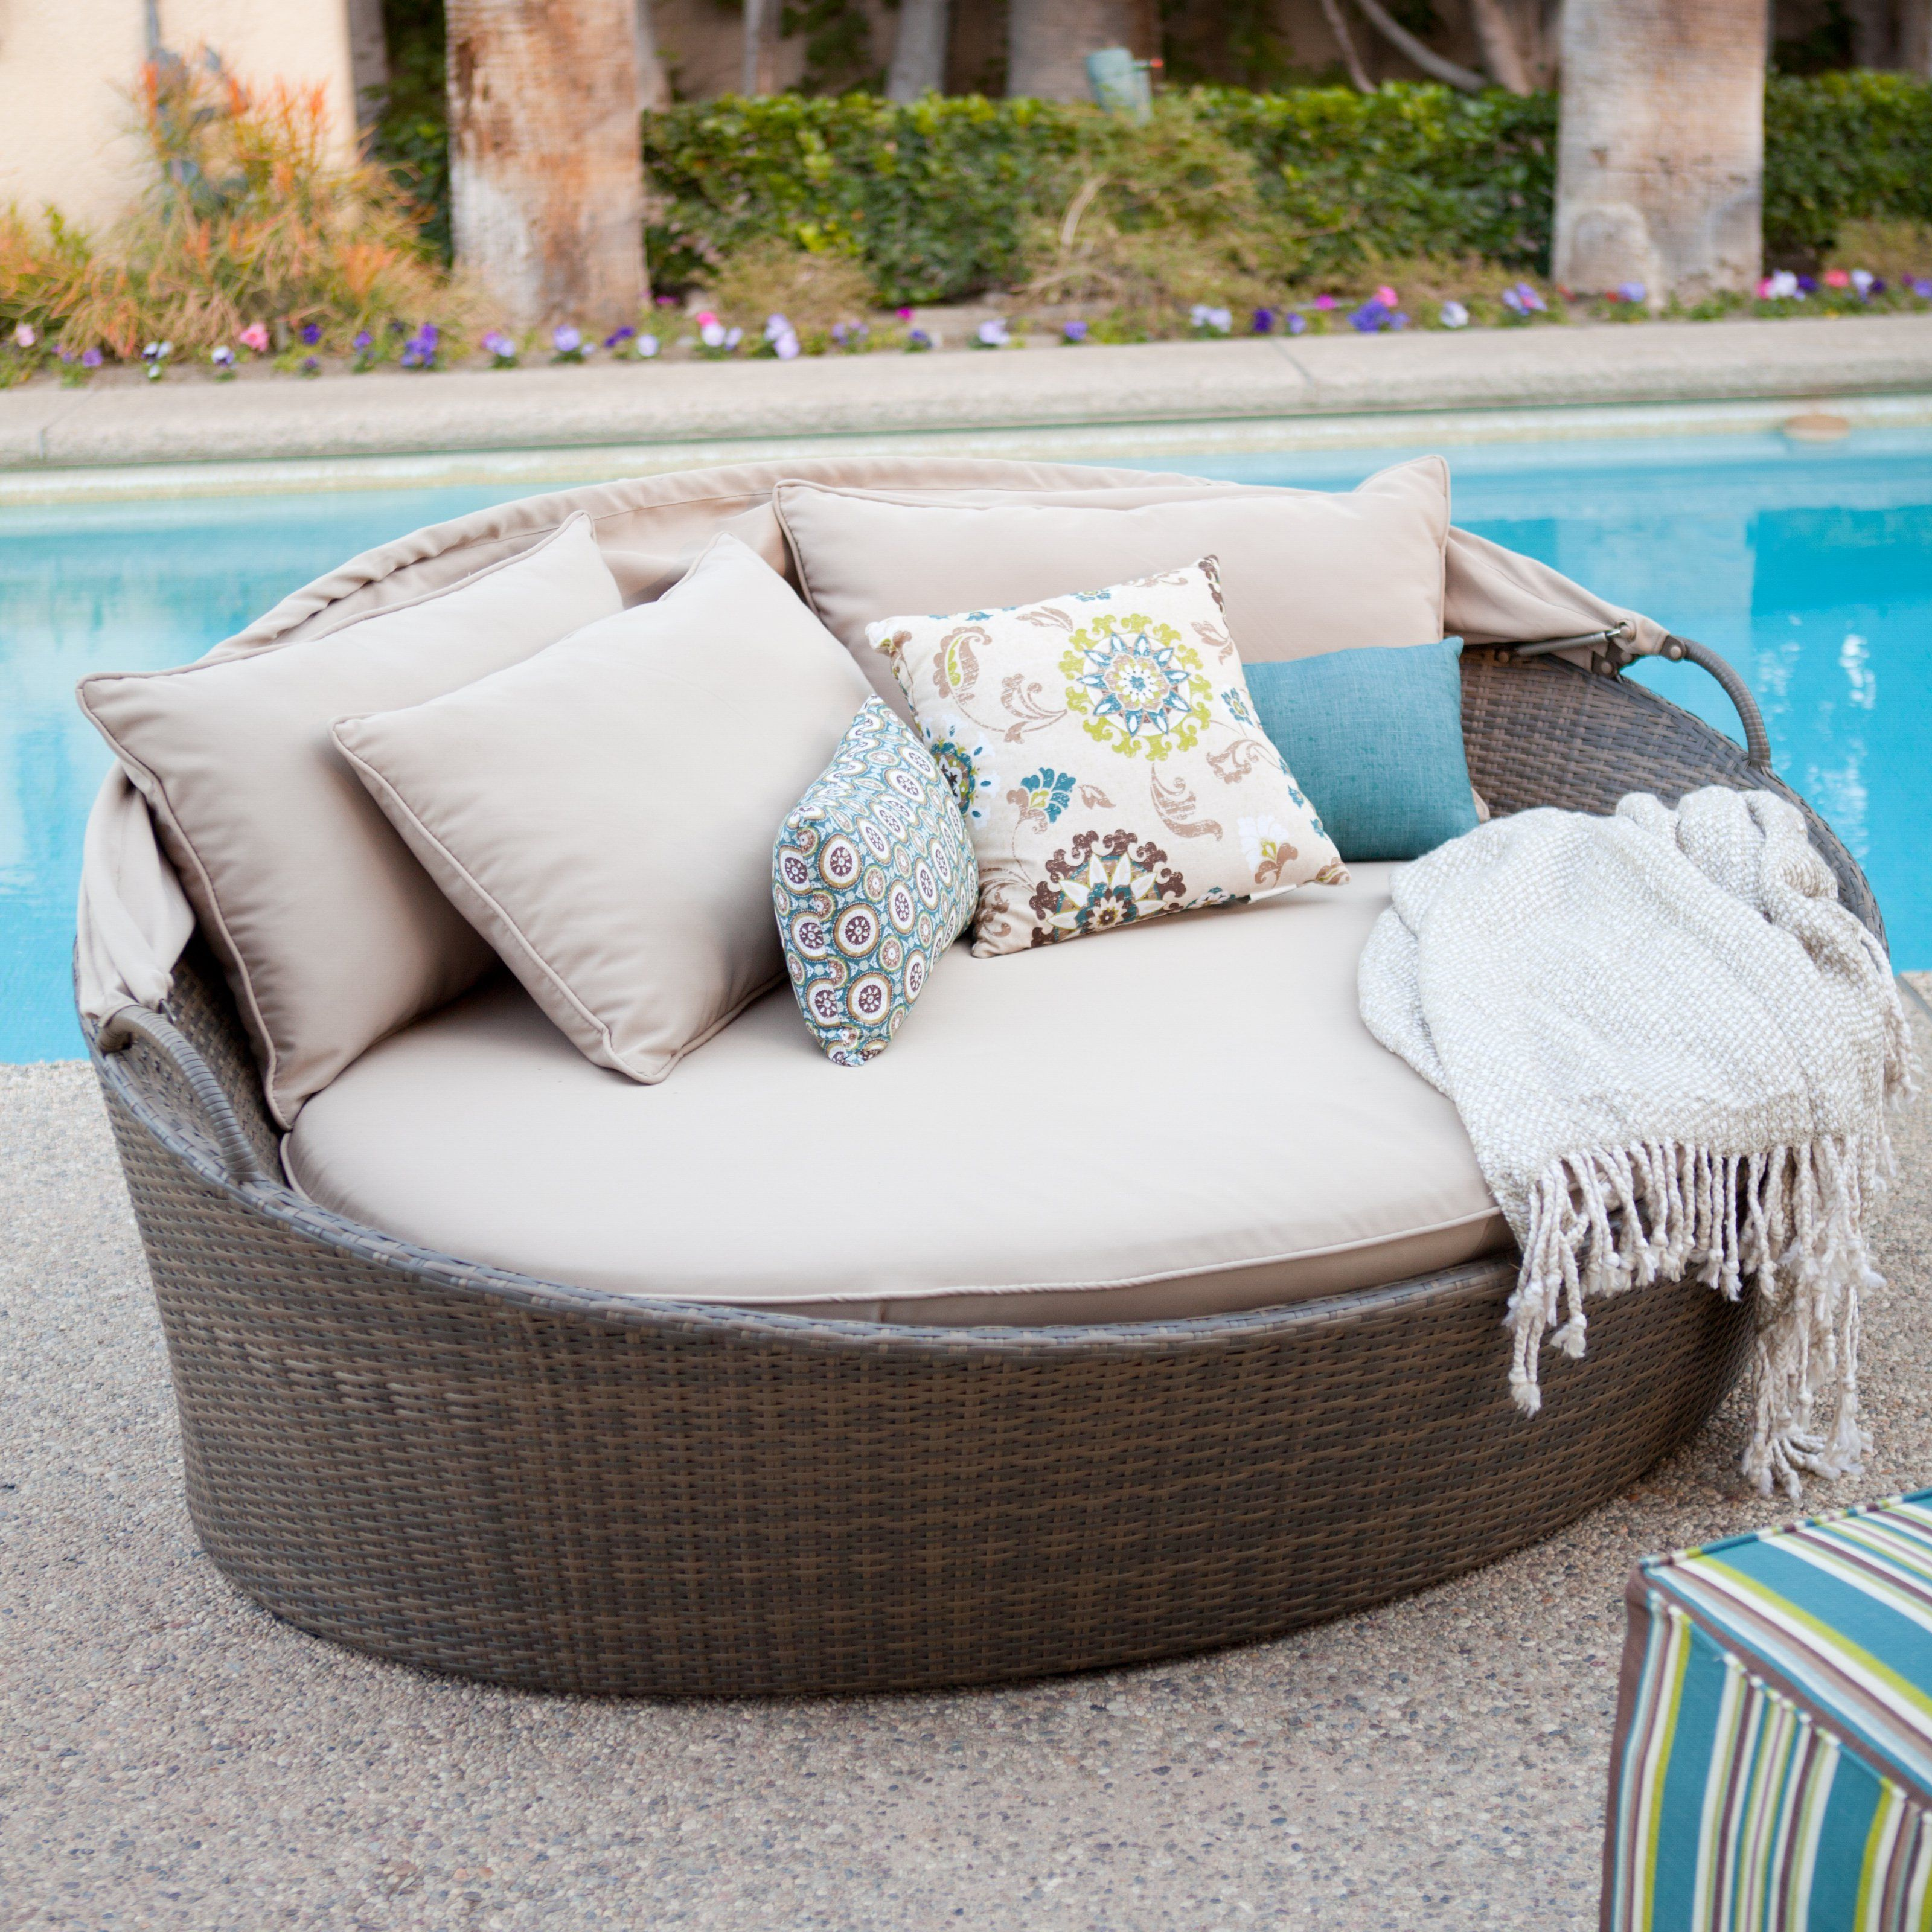 Outdoor bed cabana - Coral Coast Moorea All Weather Wicker Cabana Day Bed With